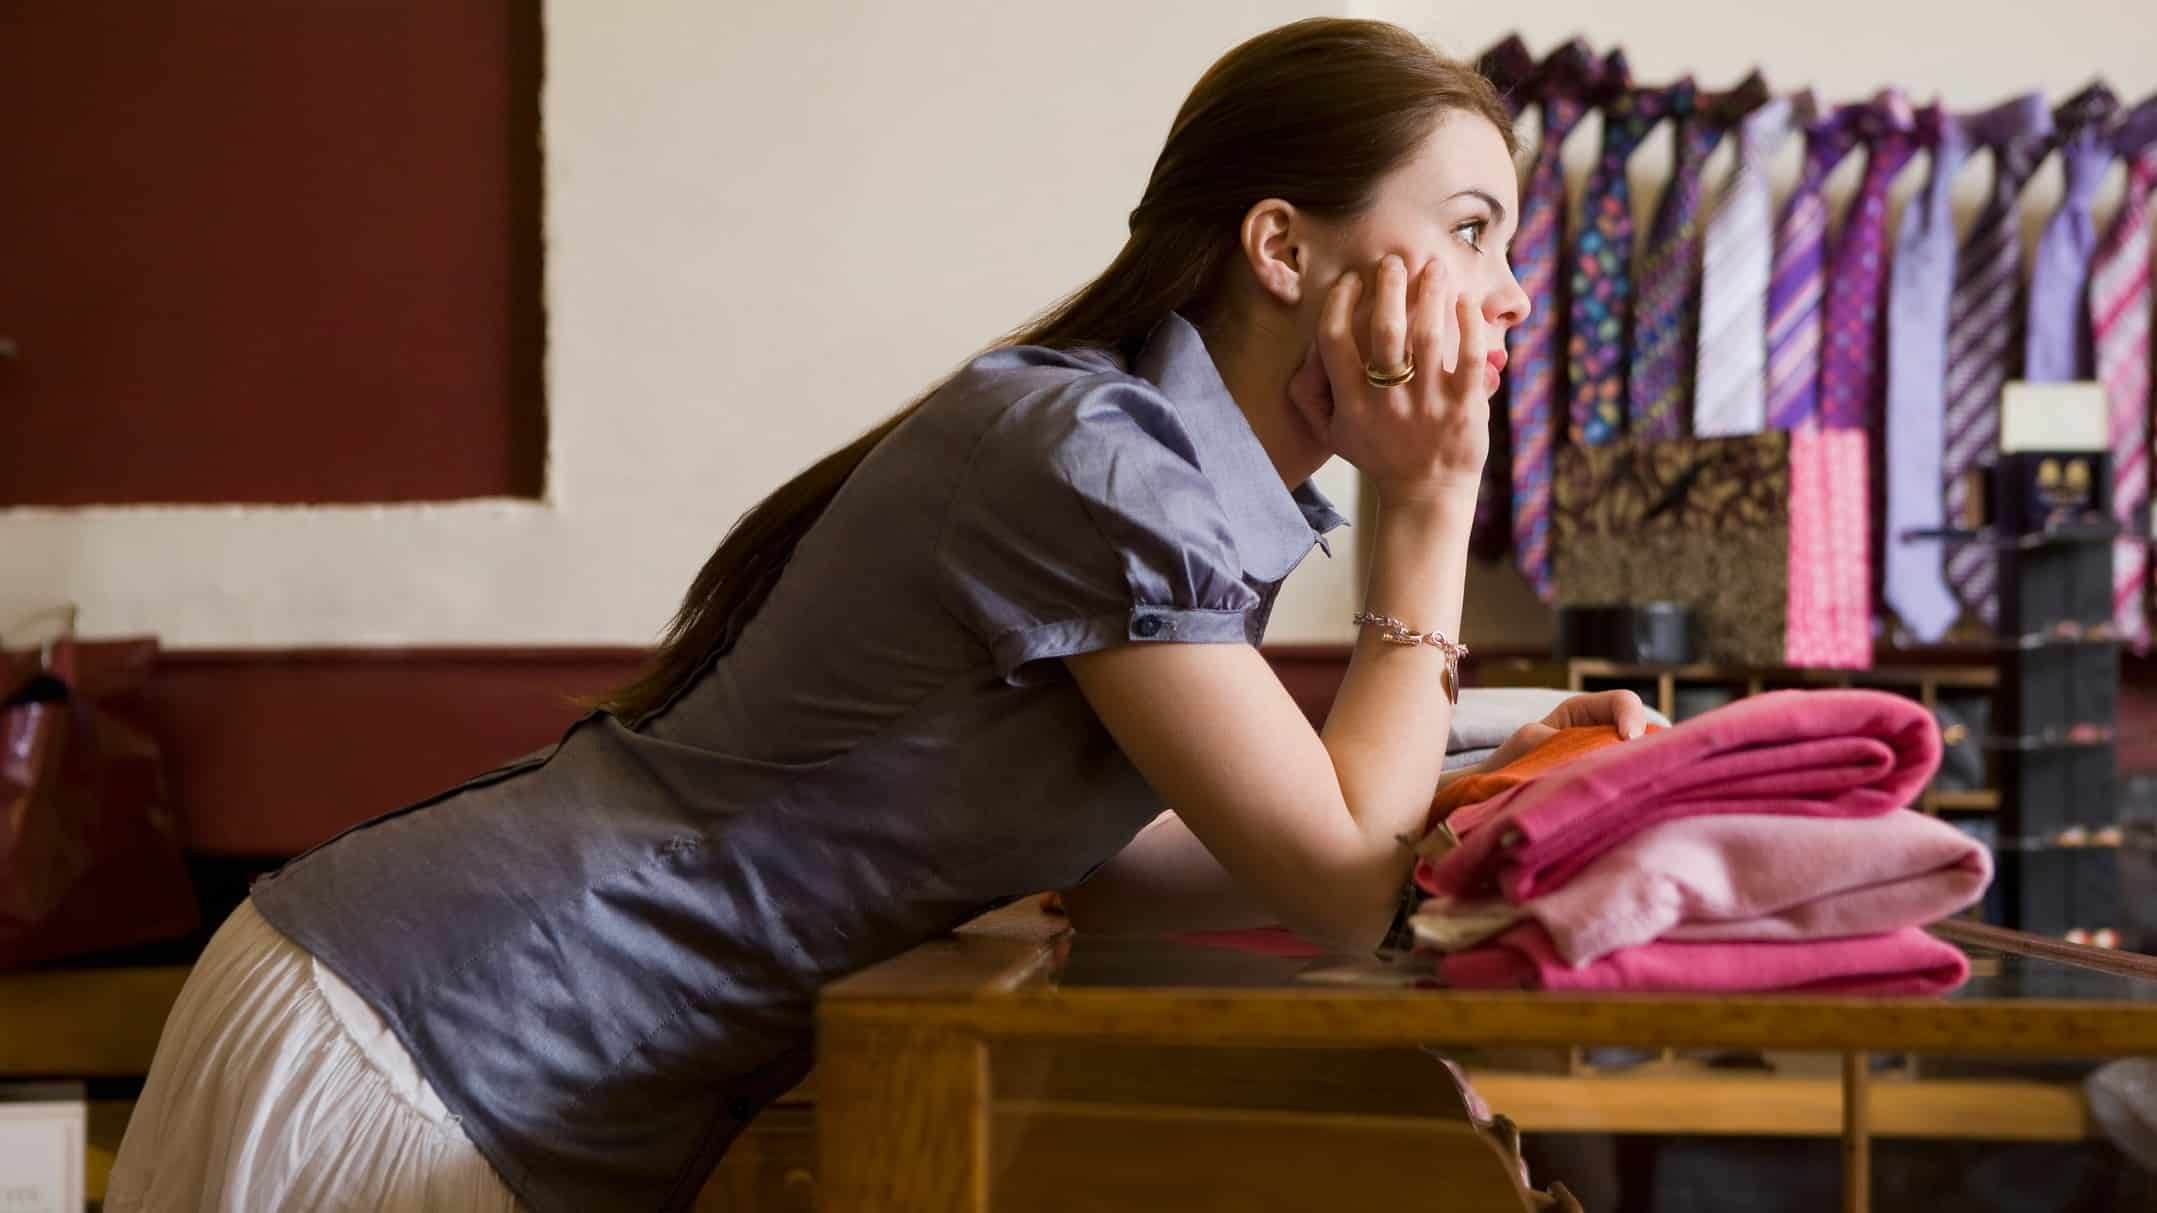 Female shop assistant bored leaning on counter